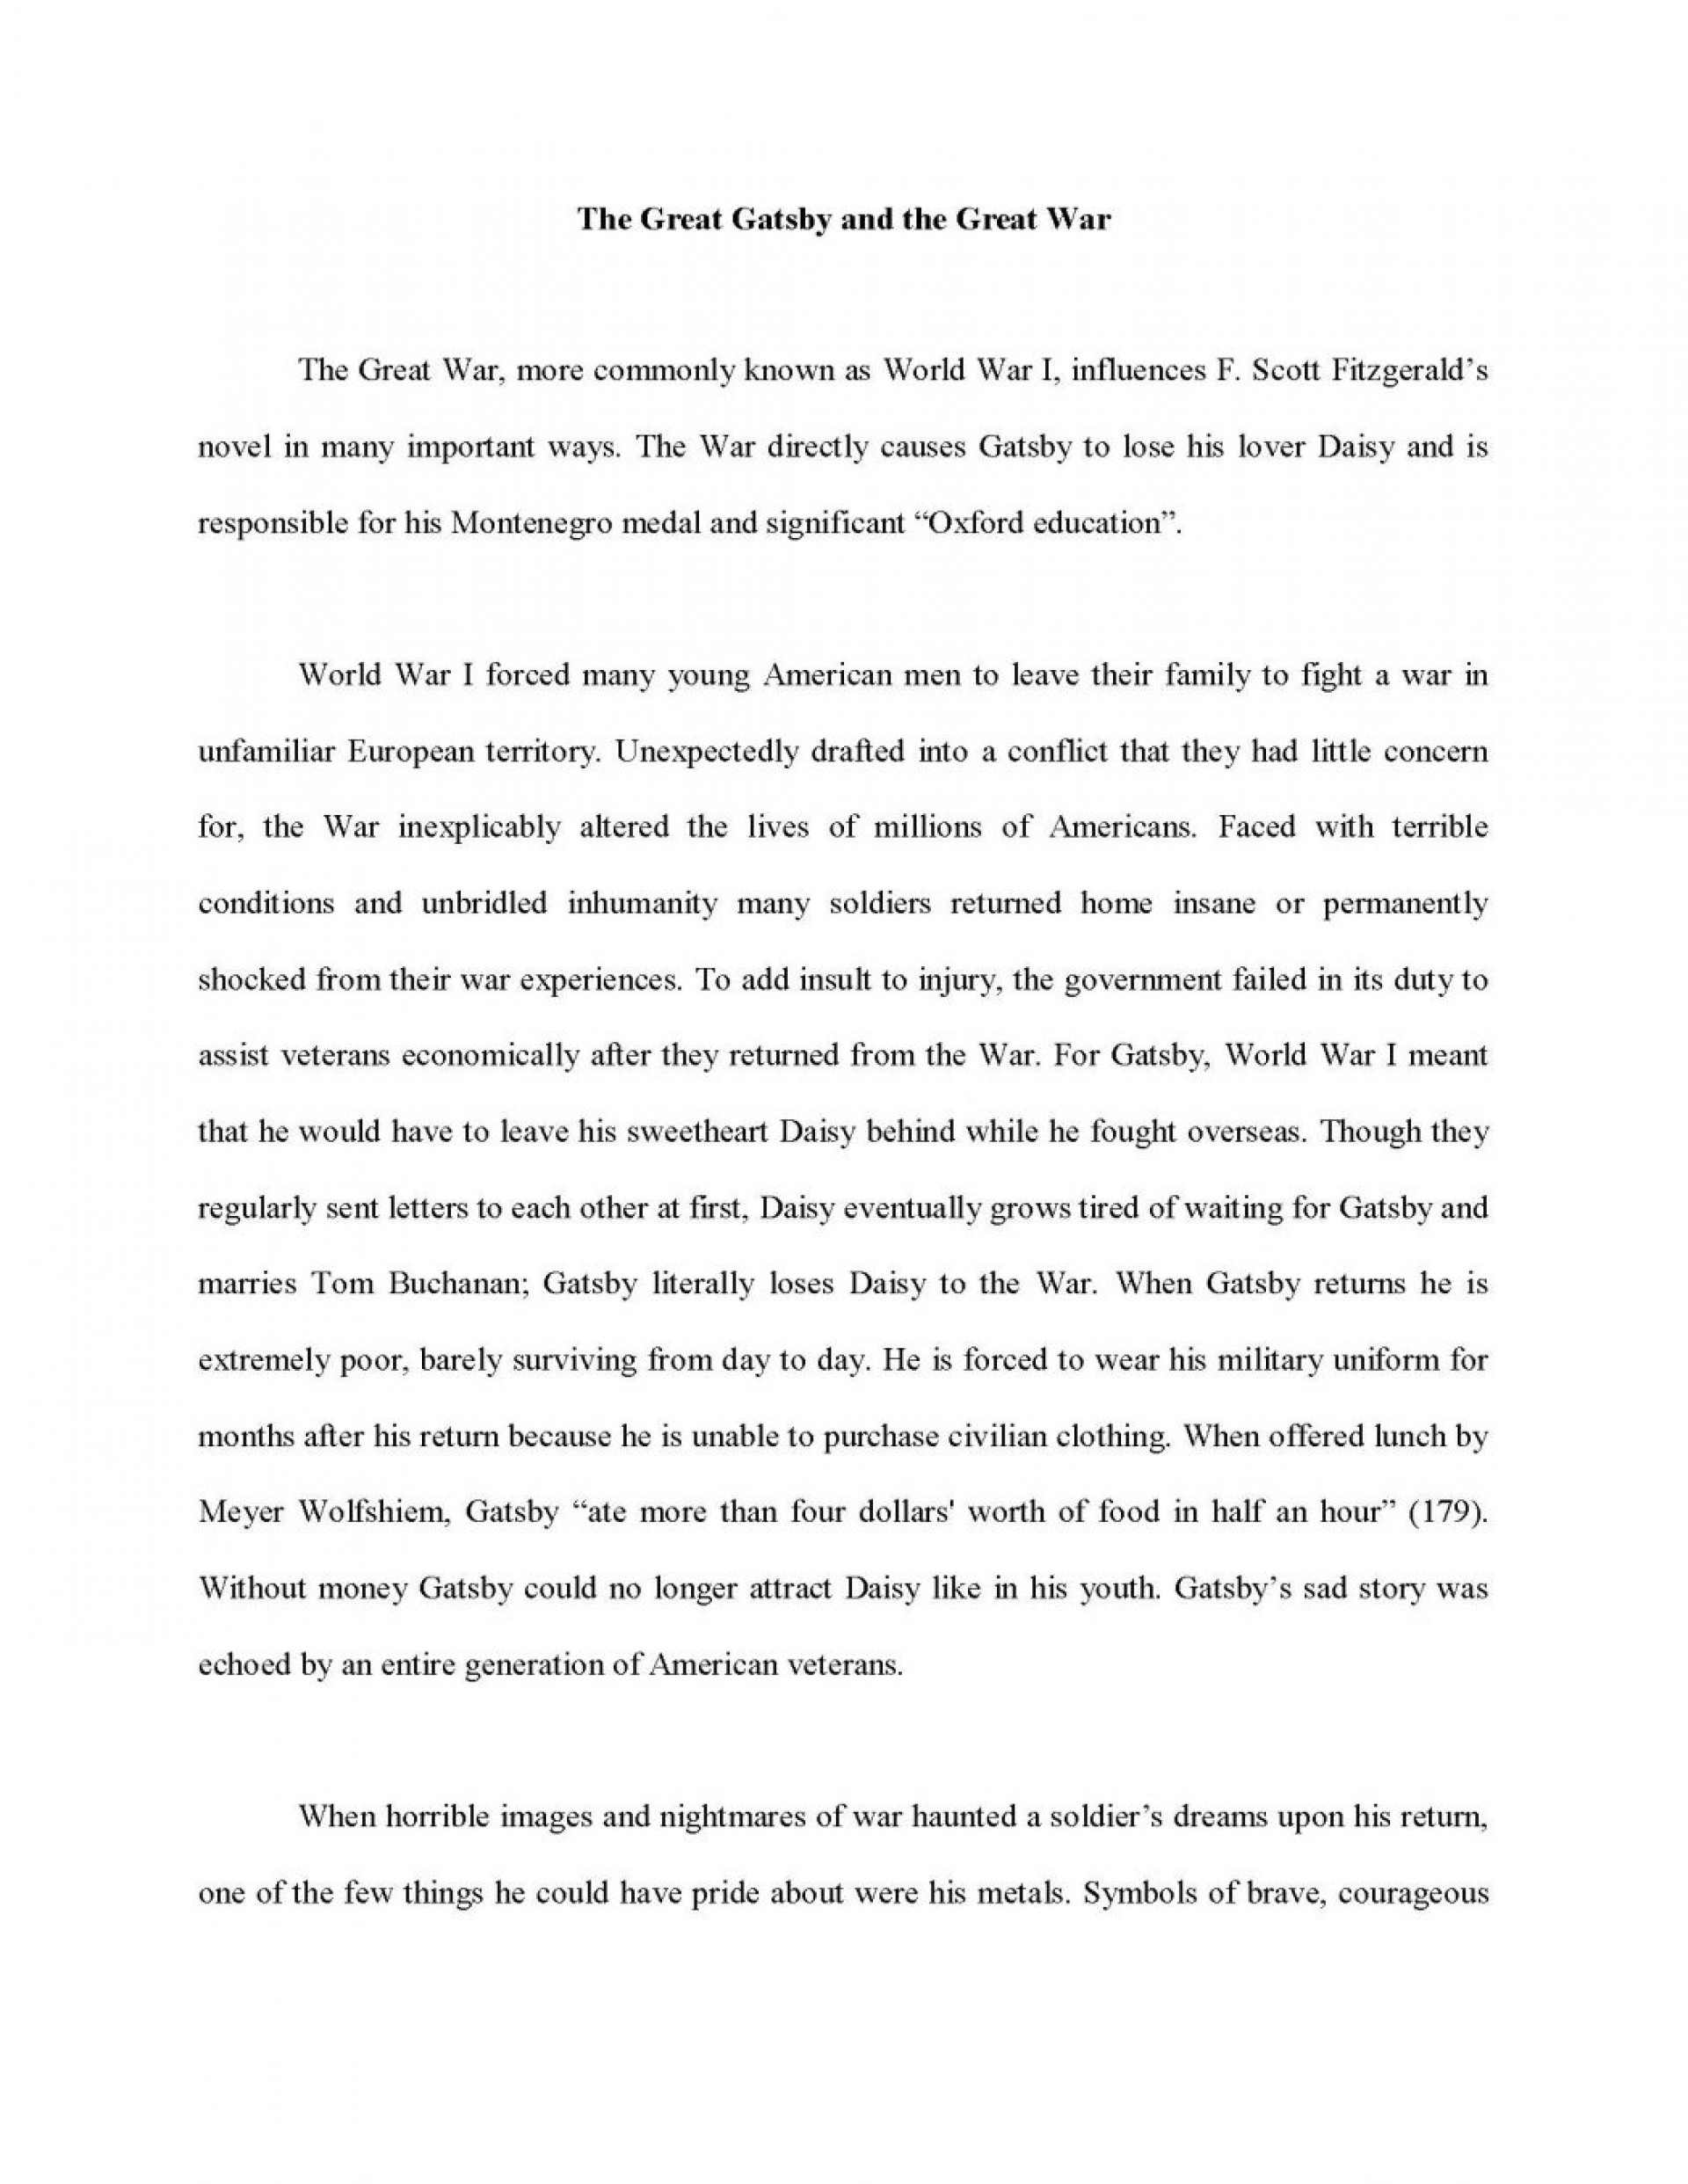 012 Essay Example Social Commentary Writing Career Sample Optometrist How To Write Inform For English On Adhd Structure Data Reflective Good Critical Dreaded Art The Great Gatsby 1920